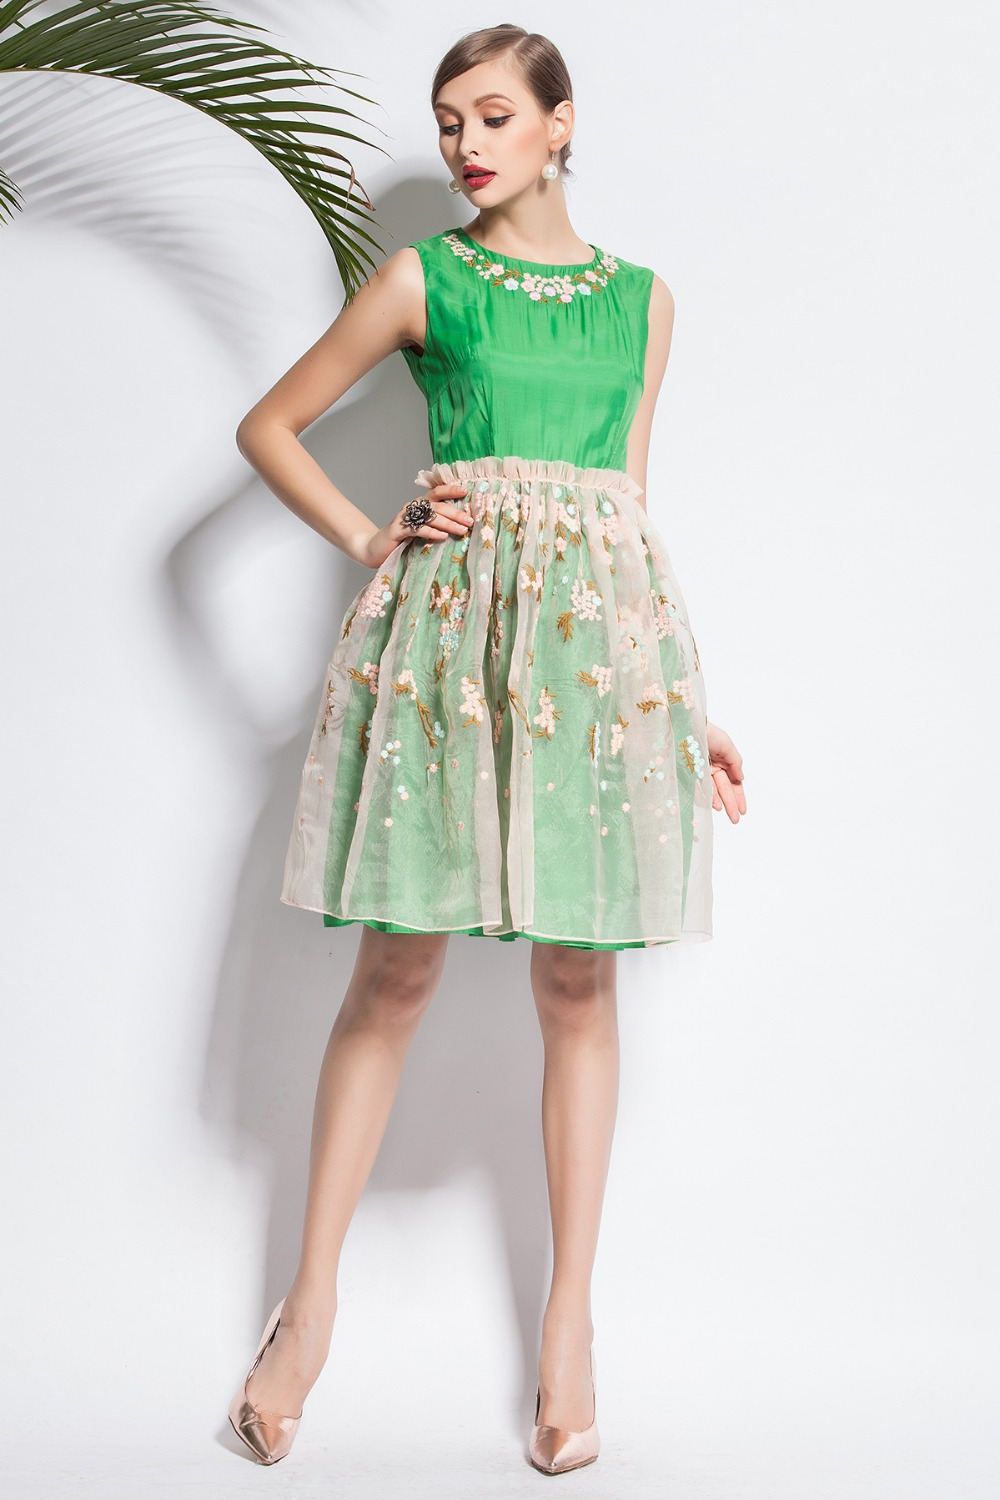 New Arrival 2015 New Fanshion Casual Style dresses Green/Yellow Embroidery Sleeveless Tank Dress(China (Mainland))